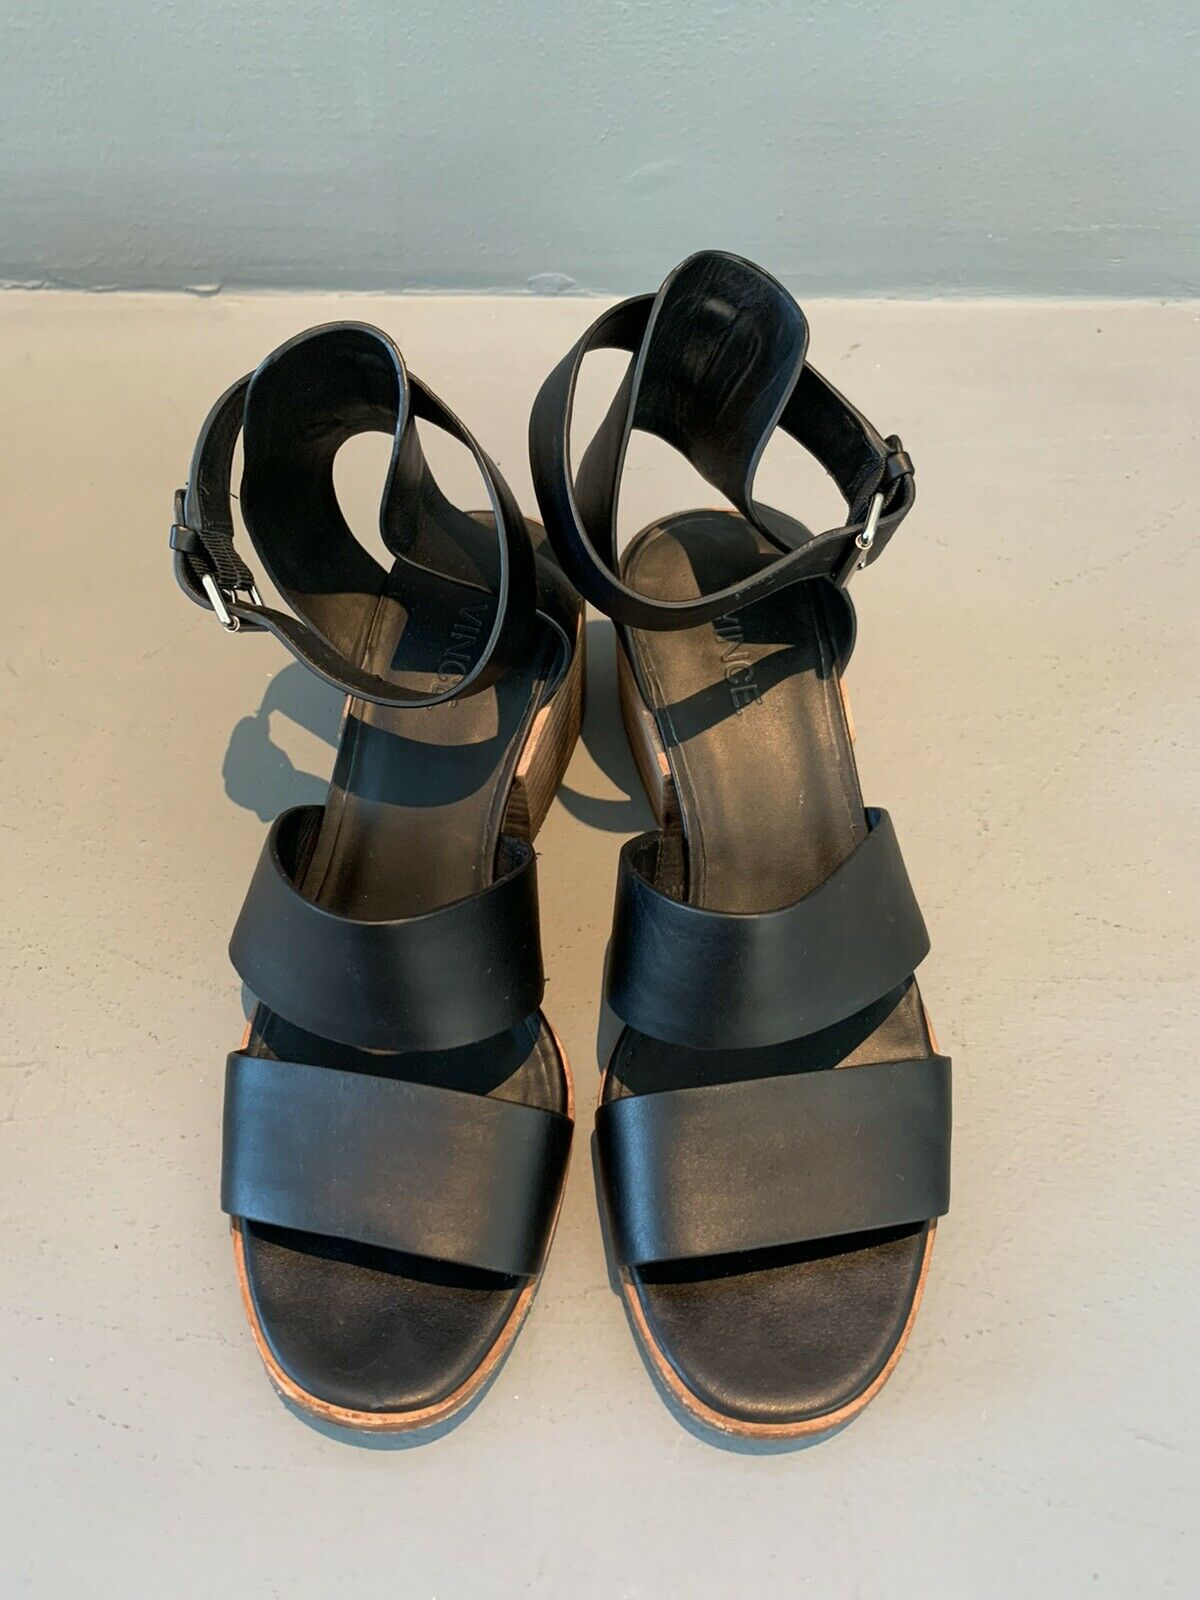 Vince Strappy Sandals - image 9